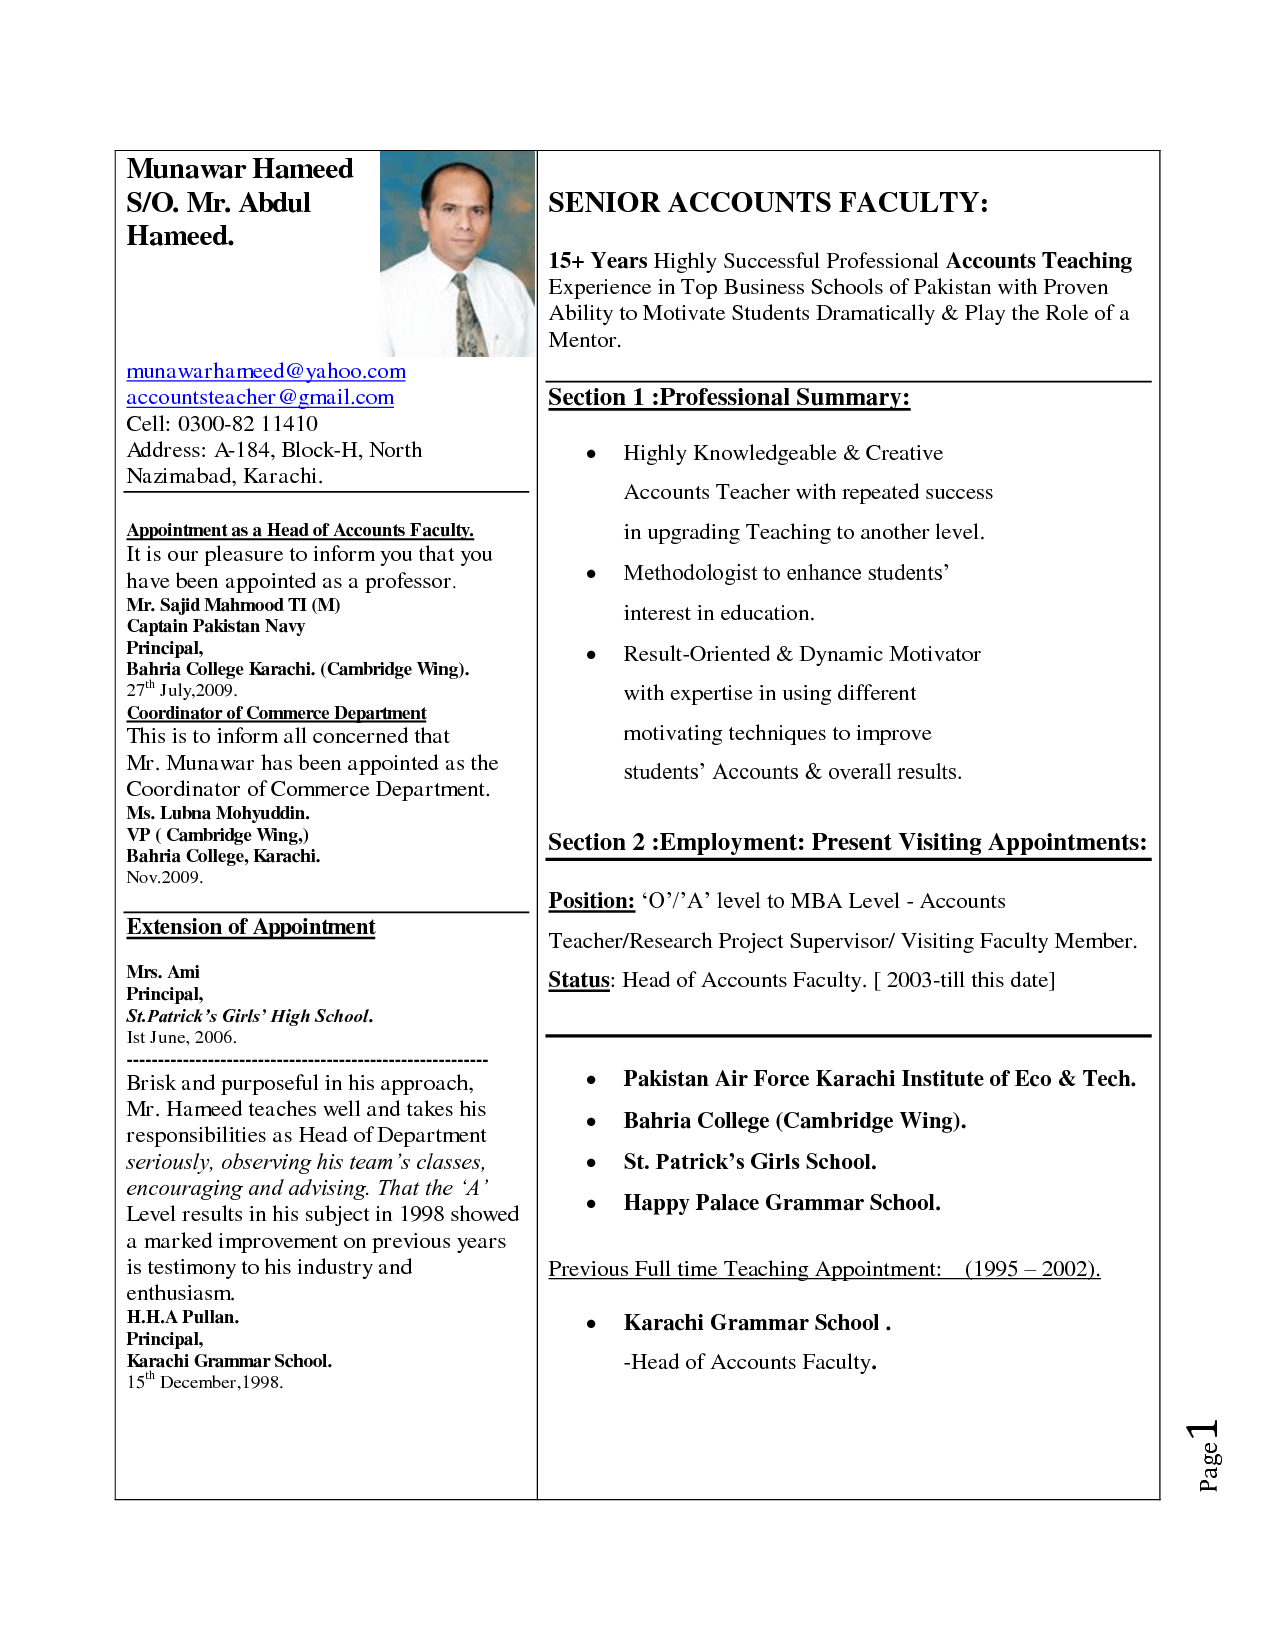 cv english example customer service resume example cv english example electrician cv example dayjob resume example sample for teaching assistant job teacher